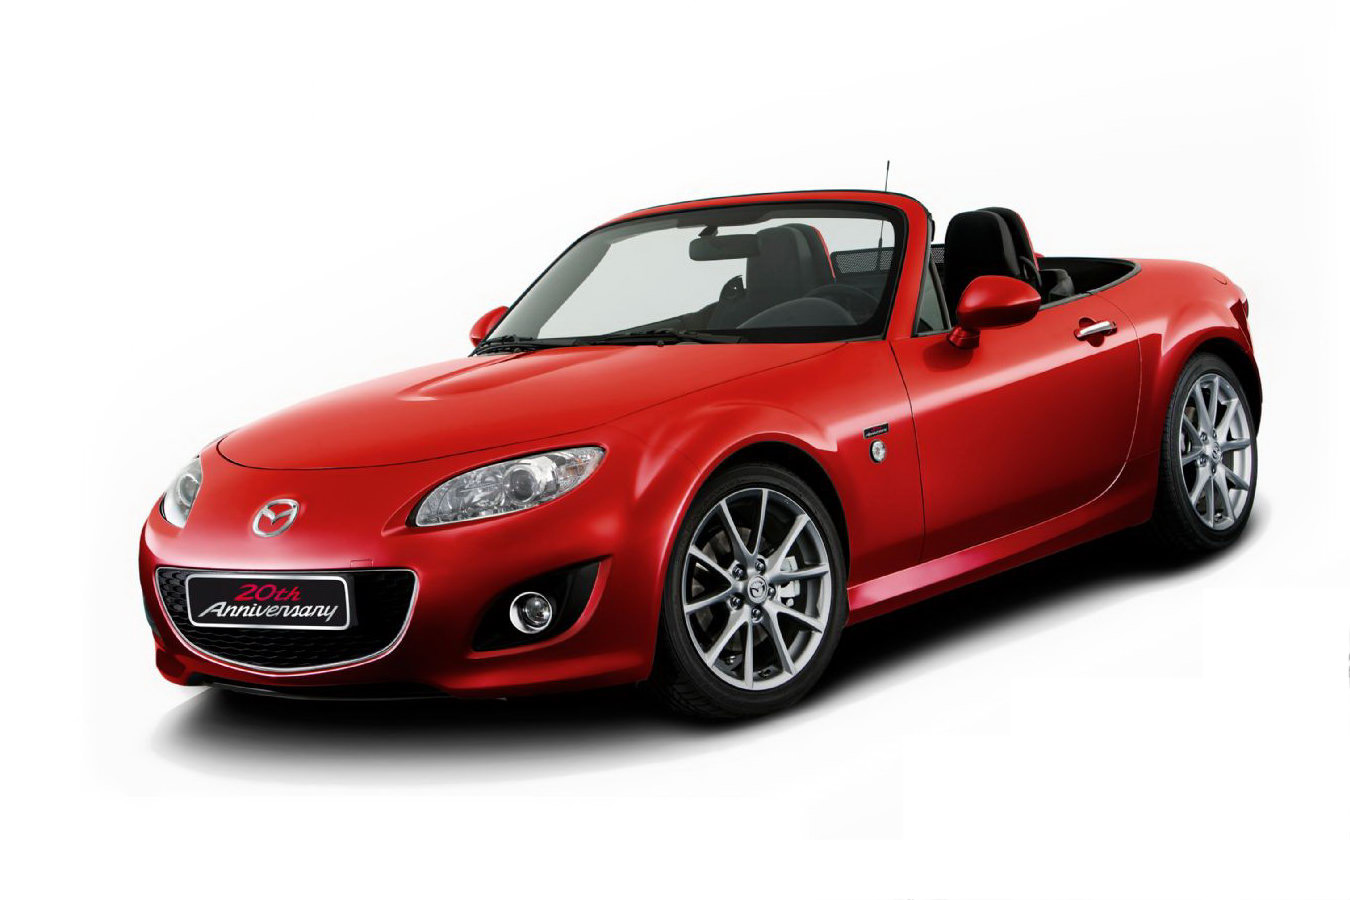 Mazda Mx 5 2015 Review Amazing Pictures And Images Look At The Car